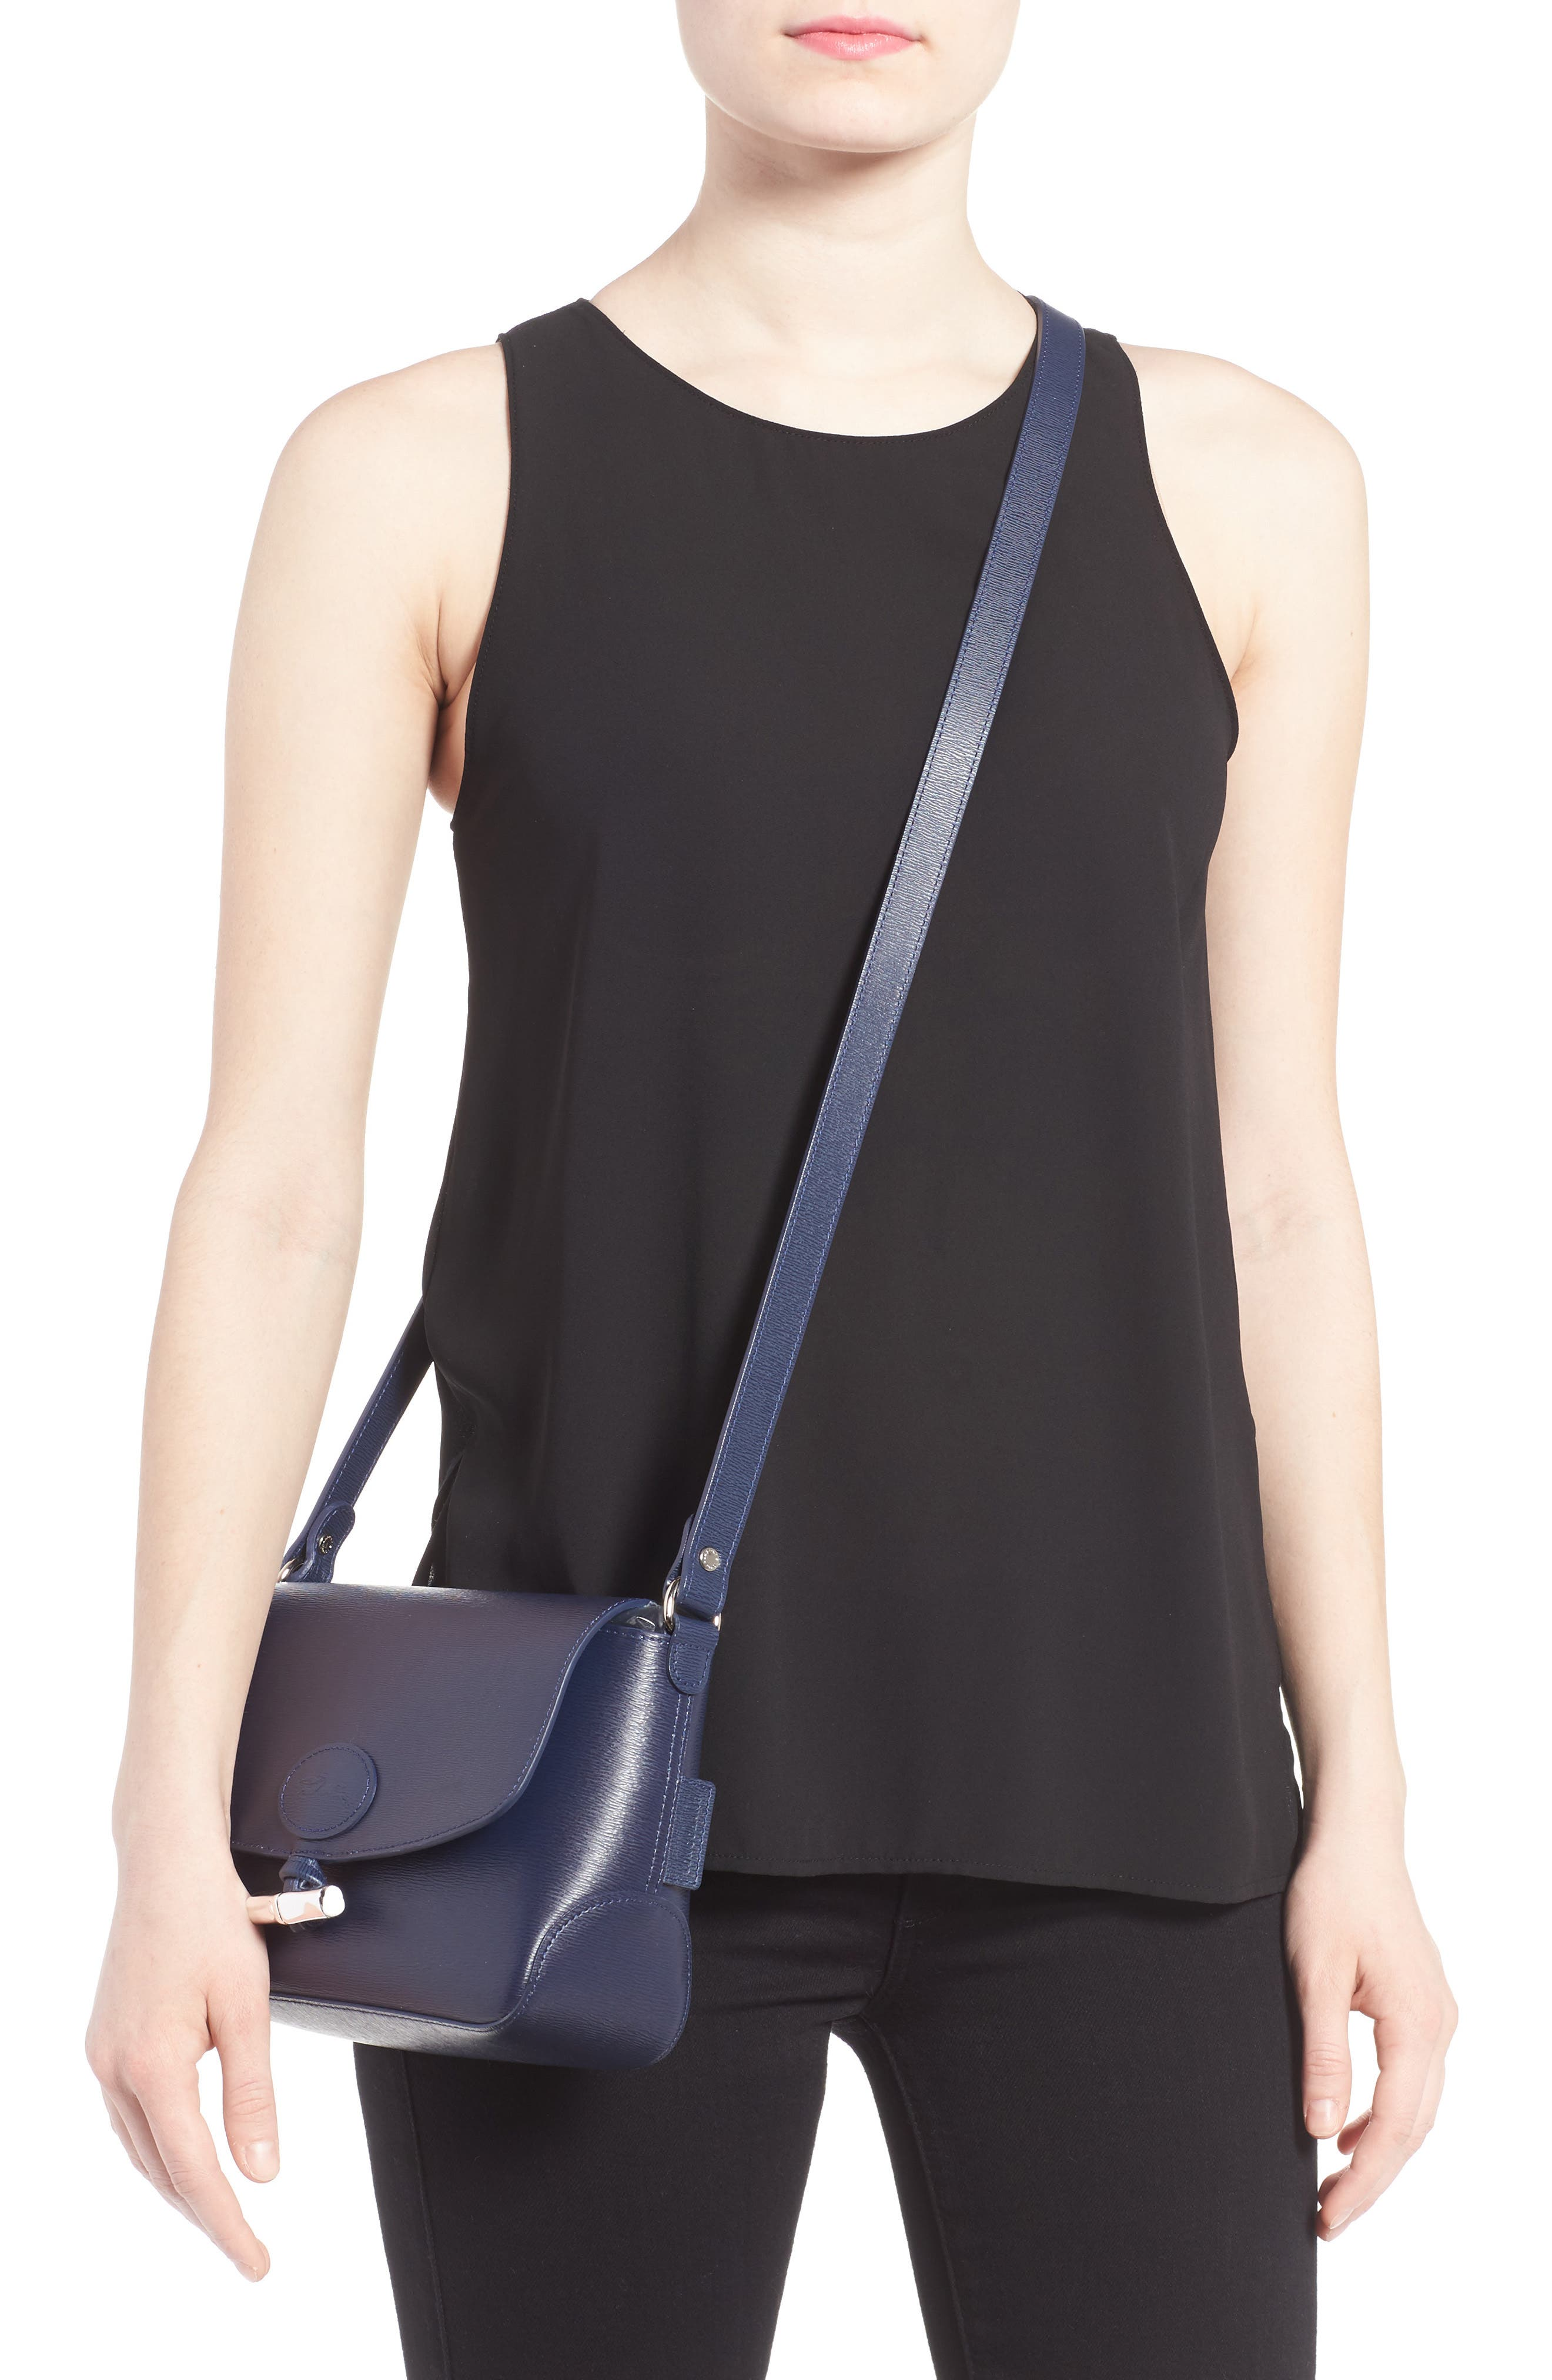 Roseau Leather Crossbody Bag,                             Alternate thumbnail 2, color,                             NAVY